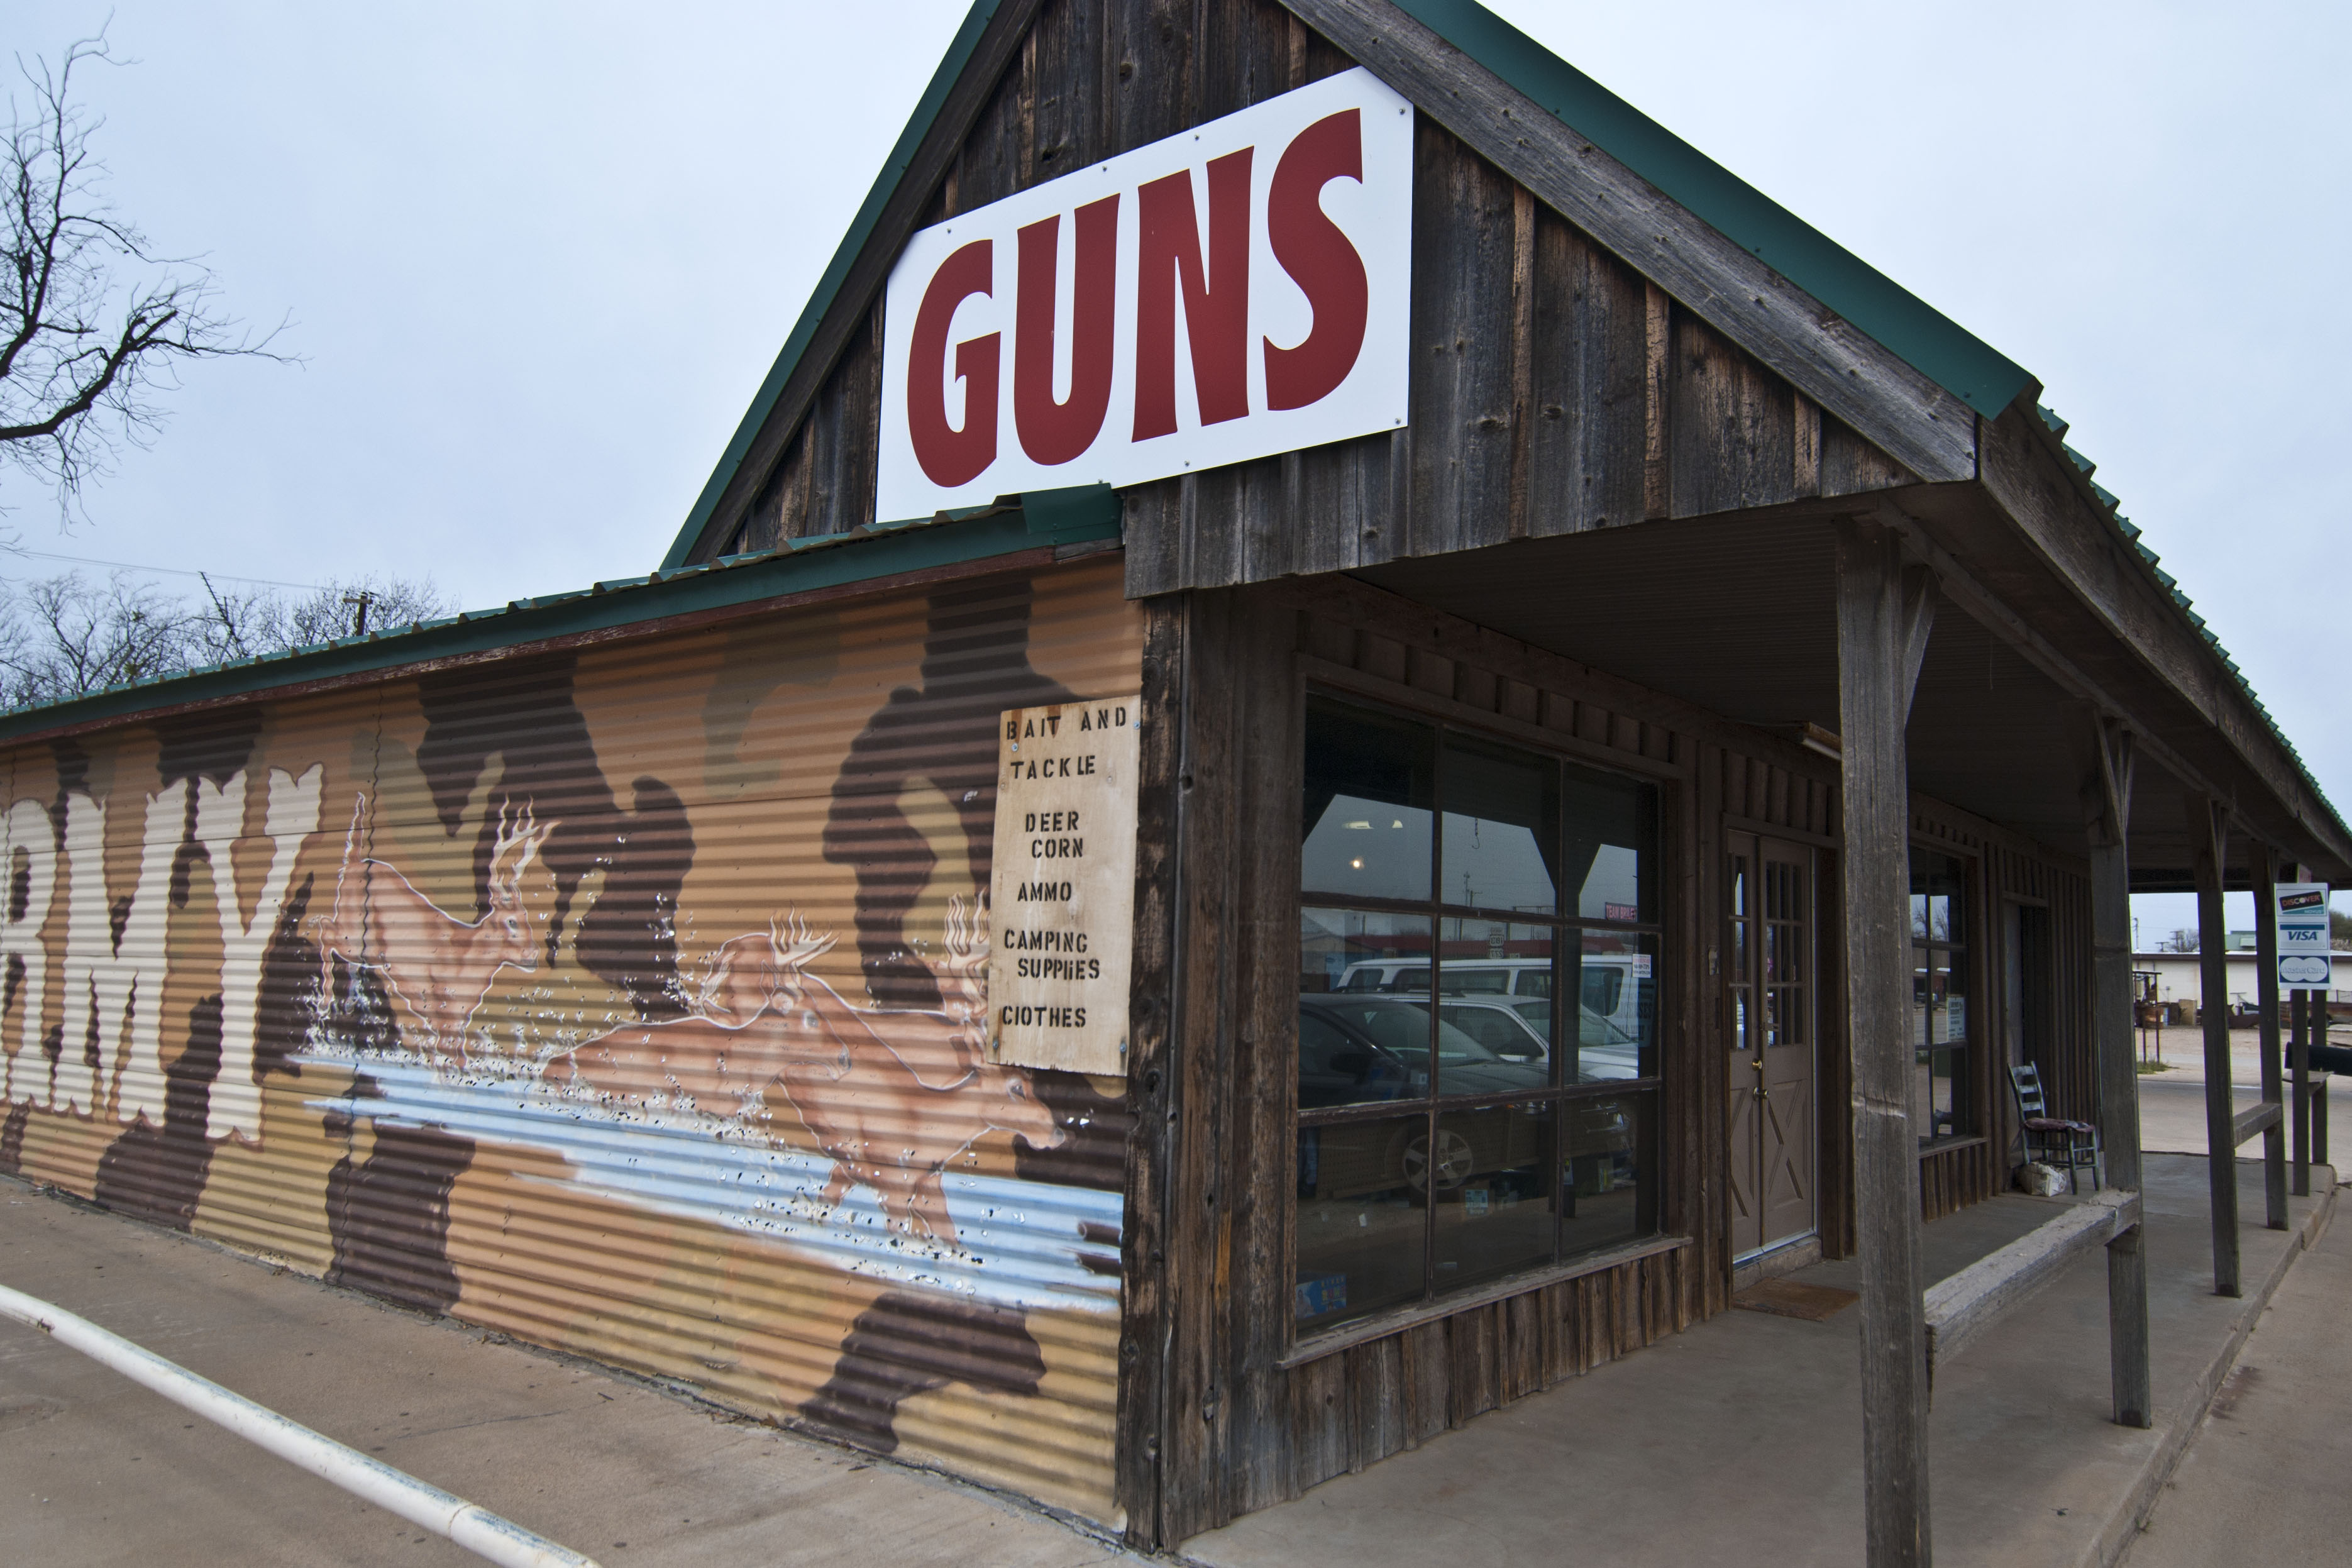 good place to prepare yourself  for Seymour, Texas,